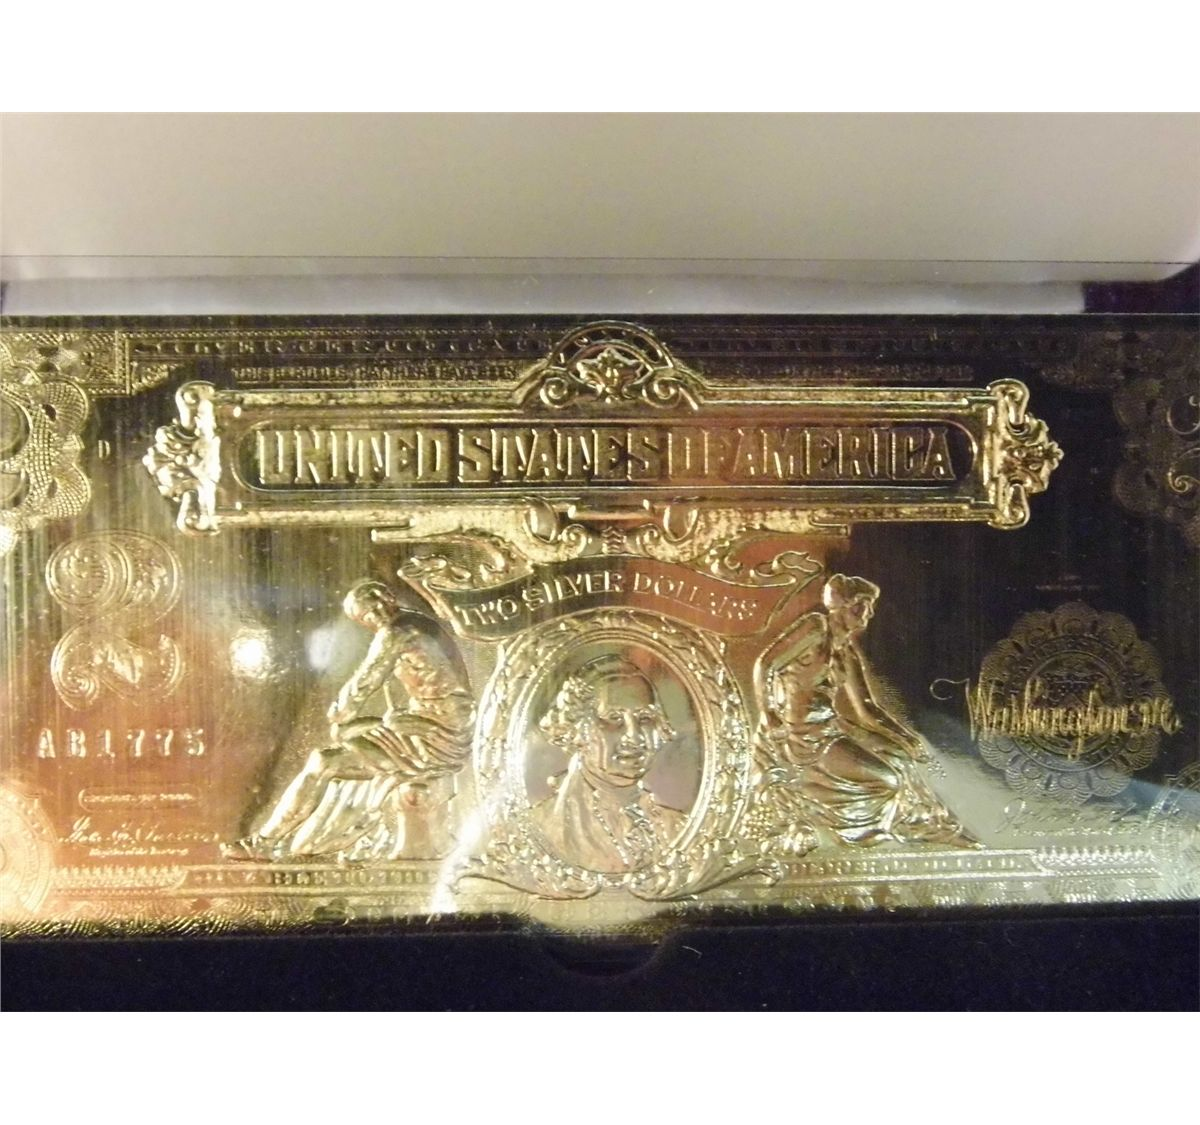 National collectors mint 2000 gold certificate note authentic image 2 national collectors mint 2000 gold certificate note authentic 2 legal tender xflitez Choice Image